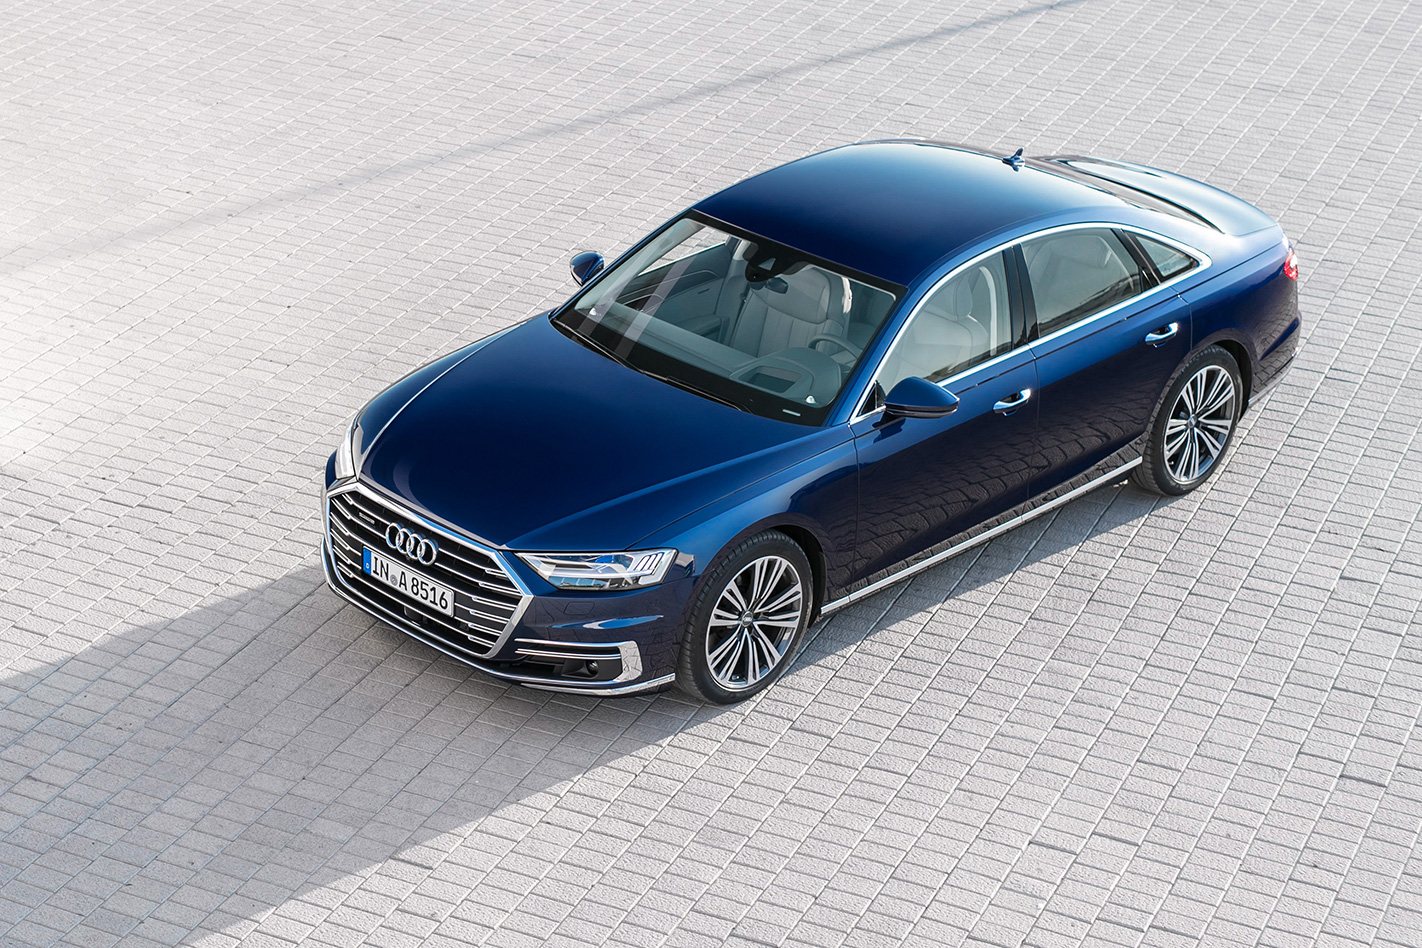 Audi A Pricing And Features - Audi a8 price